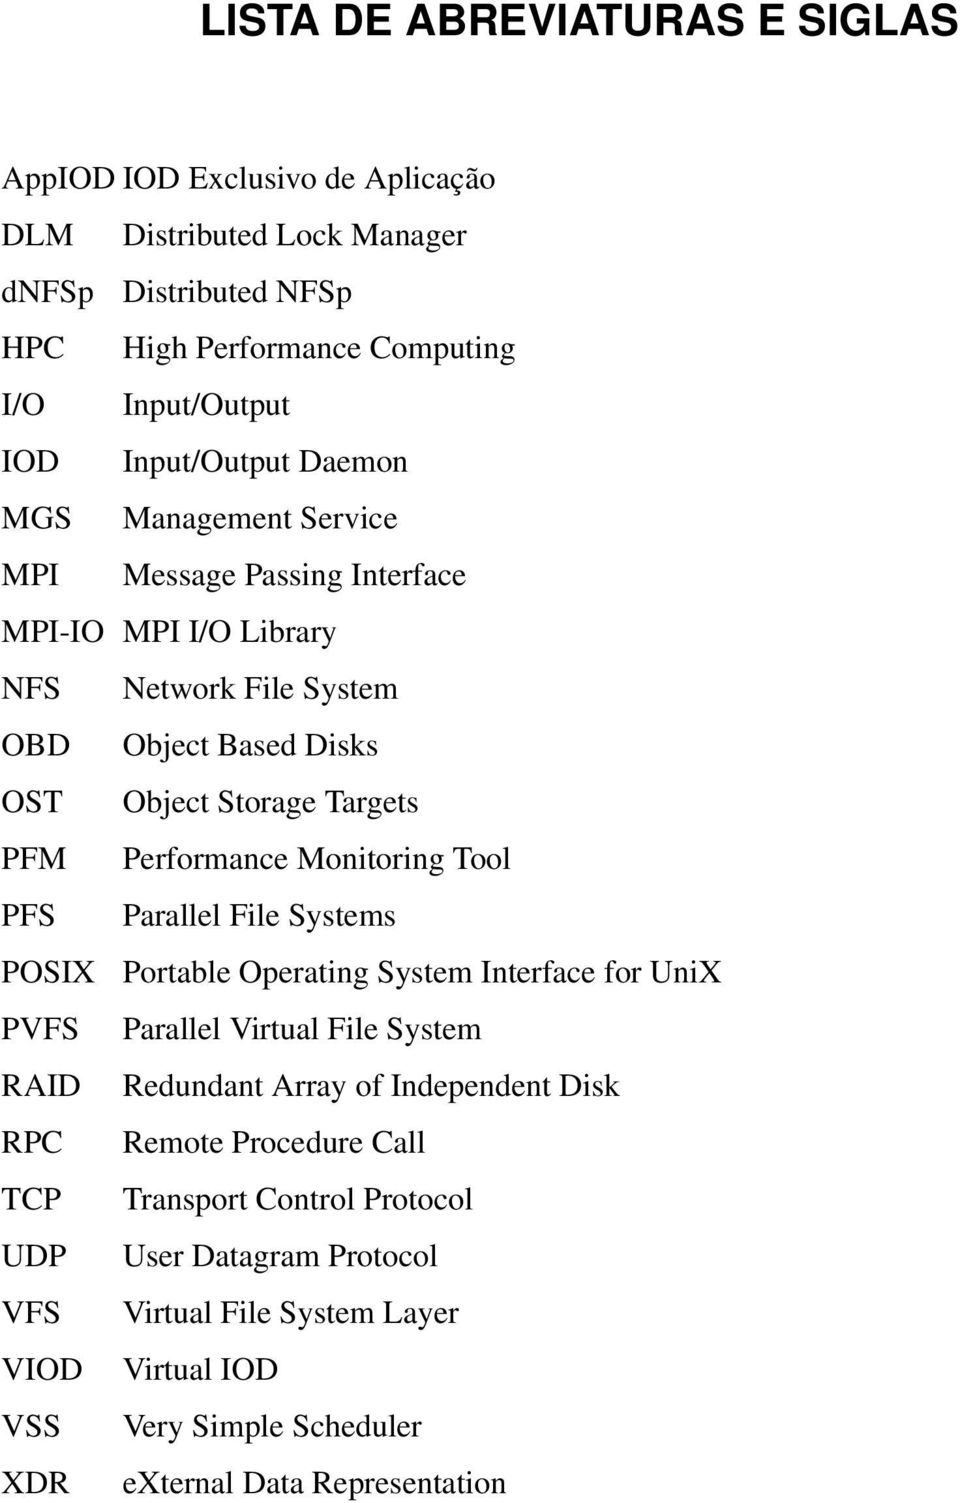 Performance Monitoring Tool PFS Parallel File Systems POSIX Portable Operating System Interface for UniX PVFS Parallel Virtual File System RAID Redundant Array of Independent